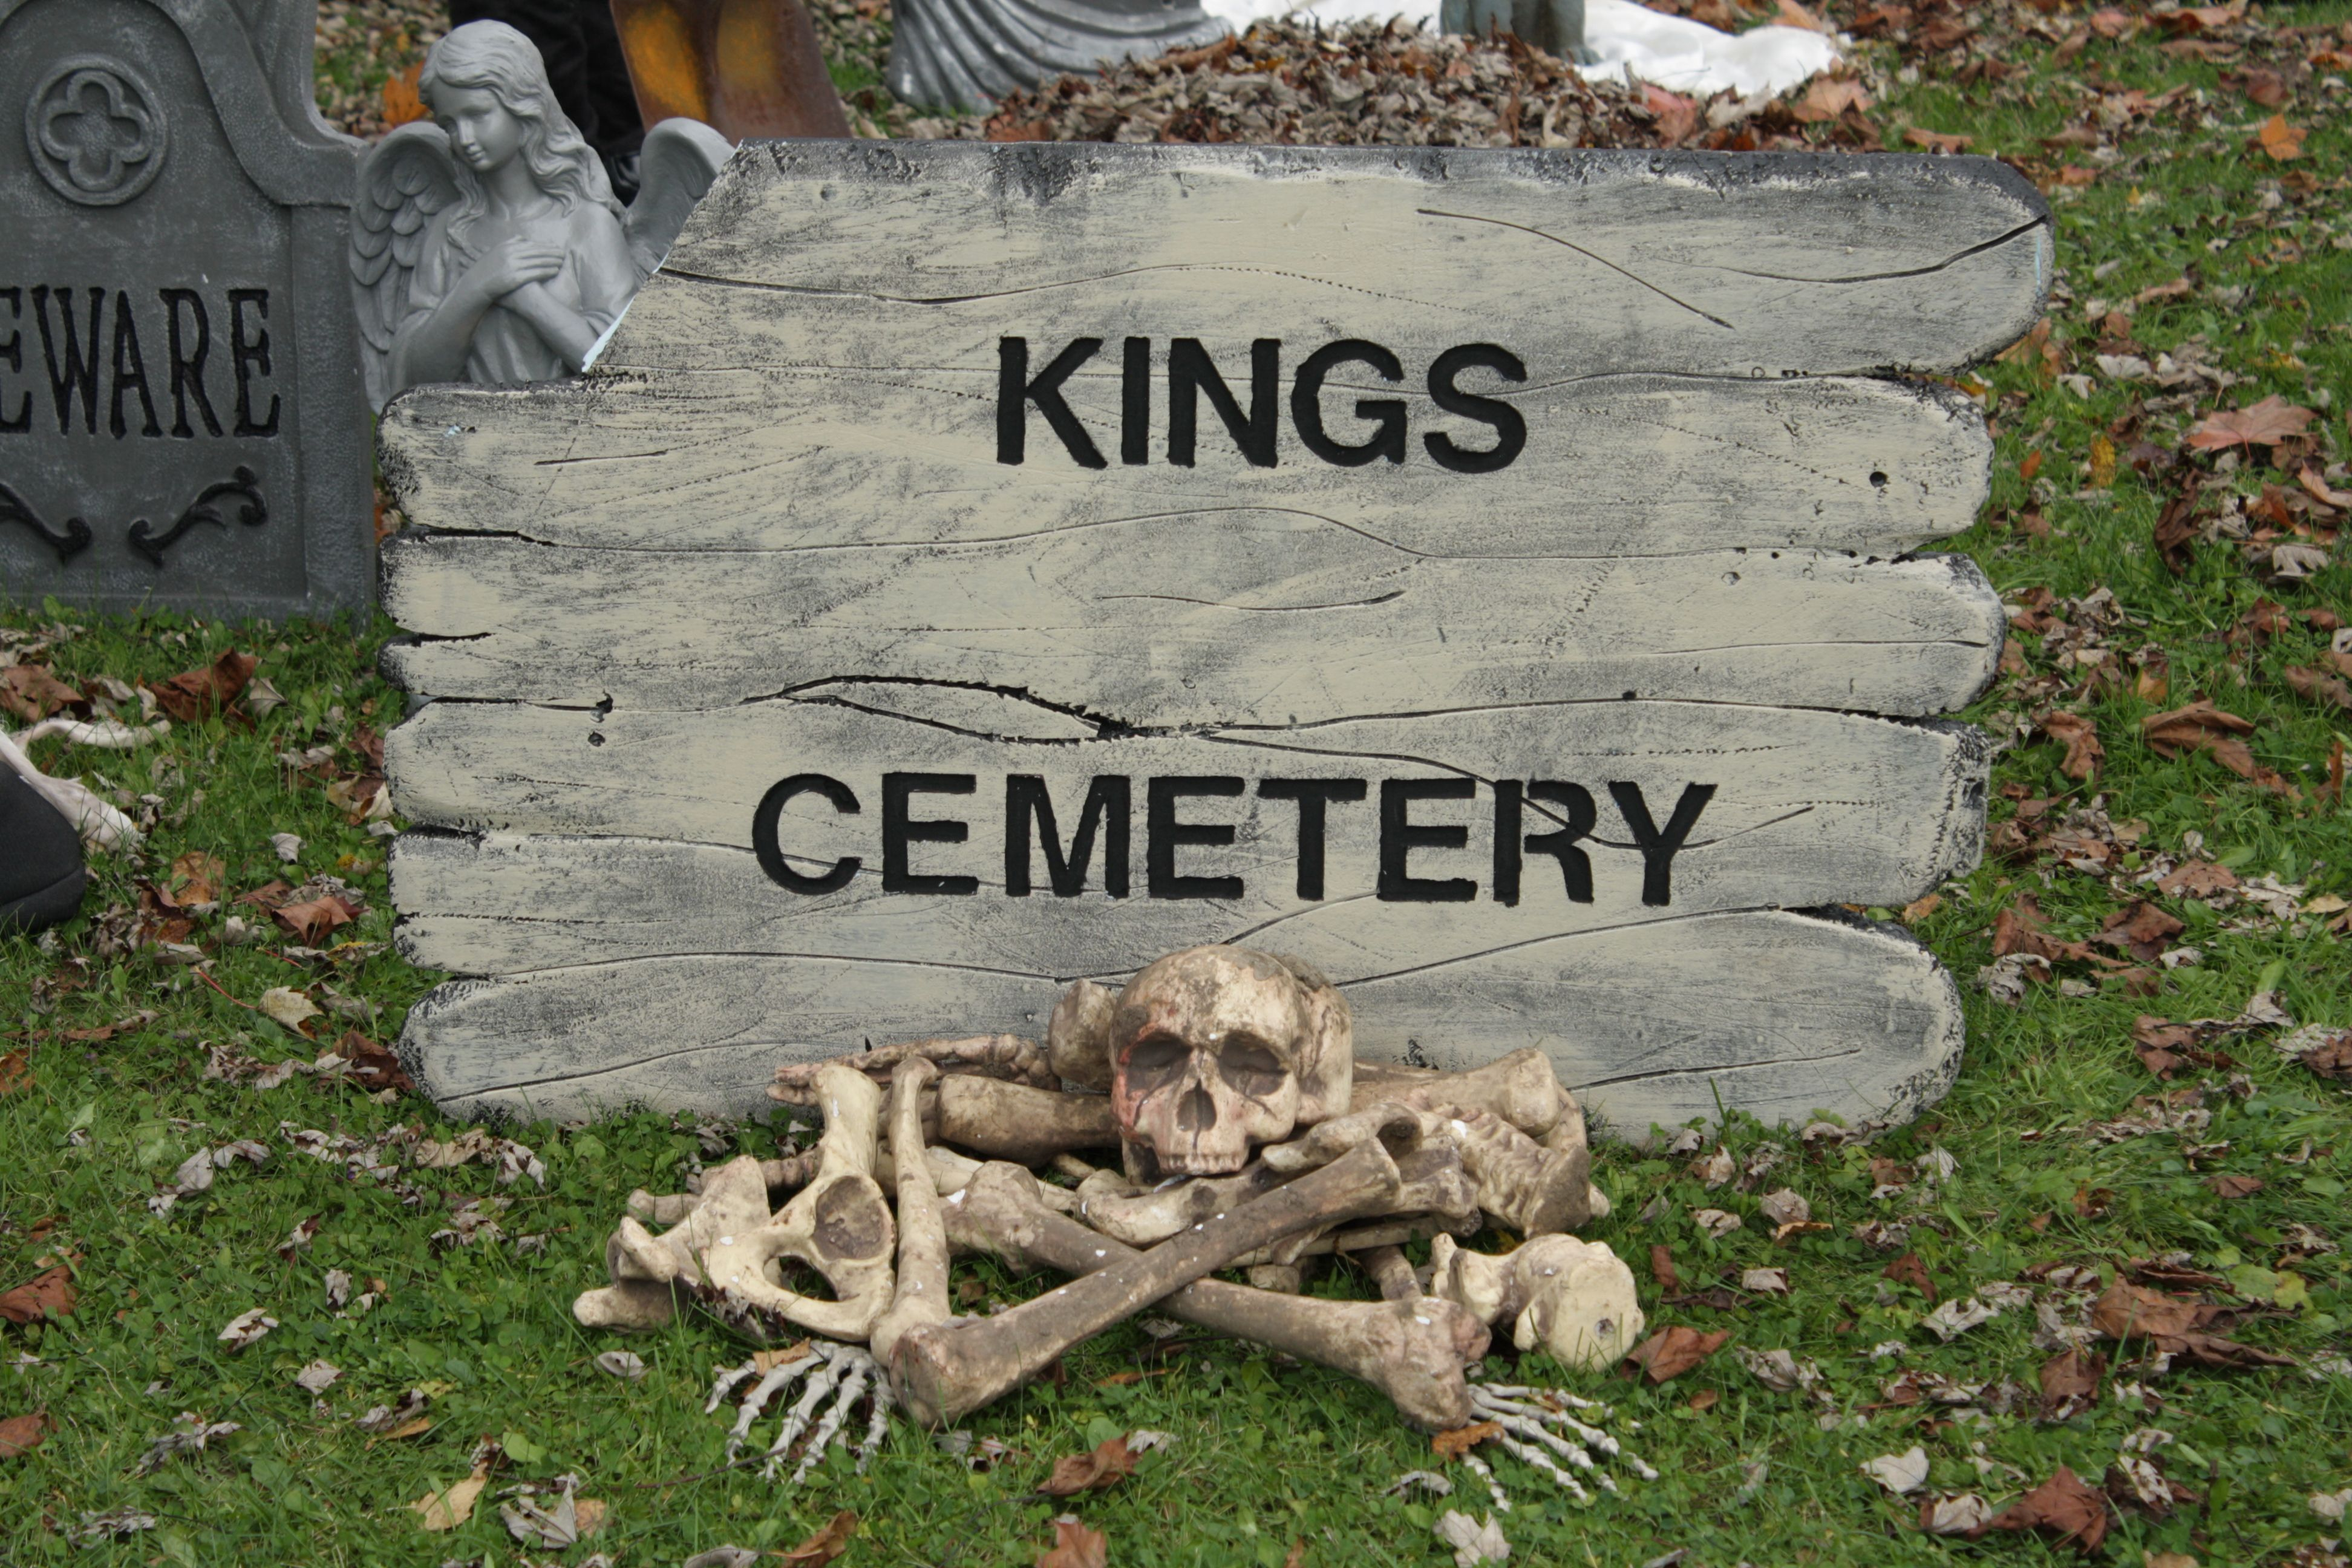 Every cemetery needs a sign!